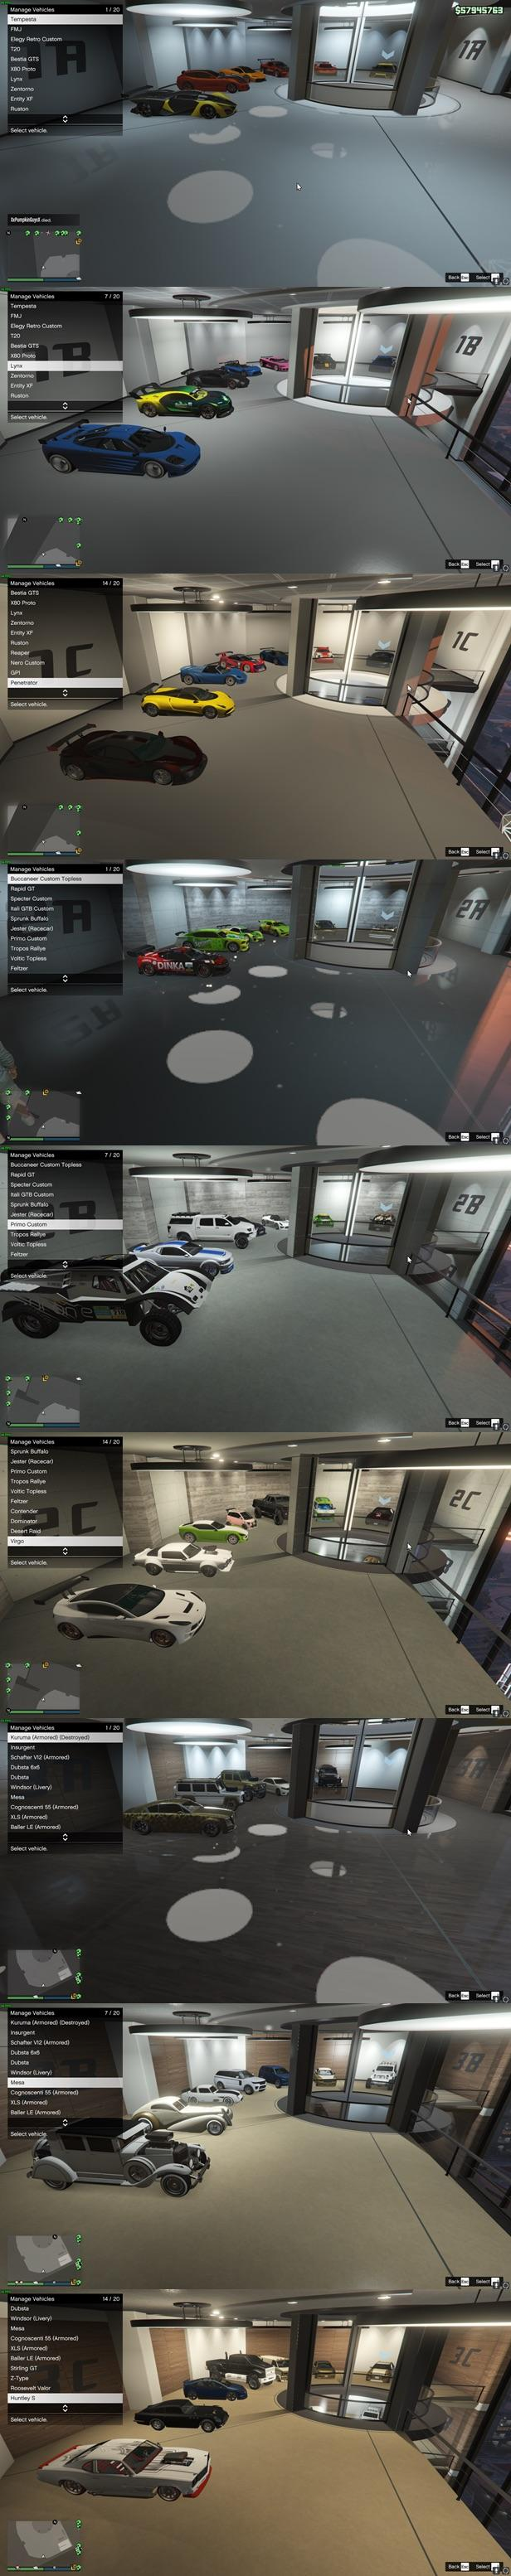 Best Office Garage Ever Grandtheftautov Gtav Gta5